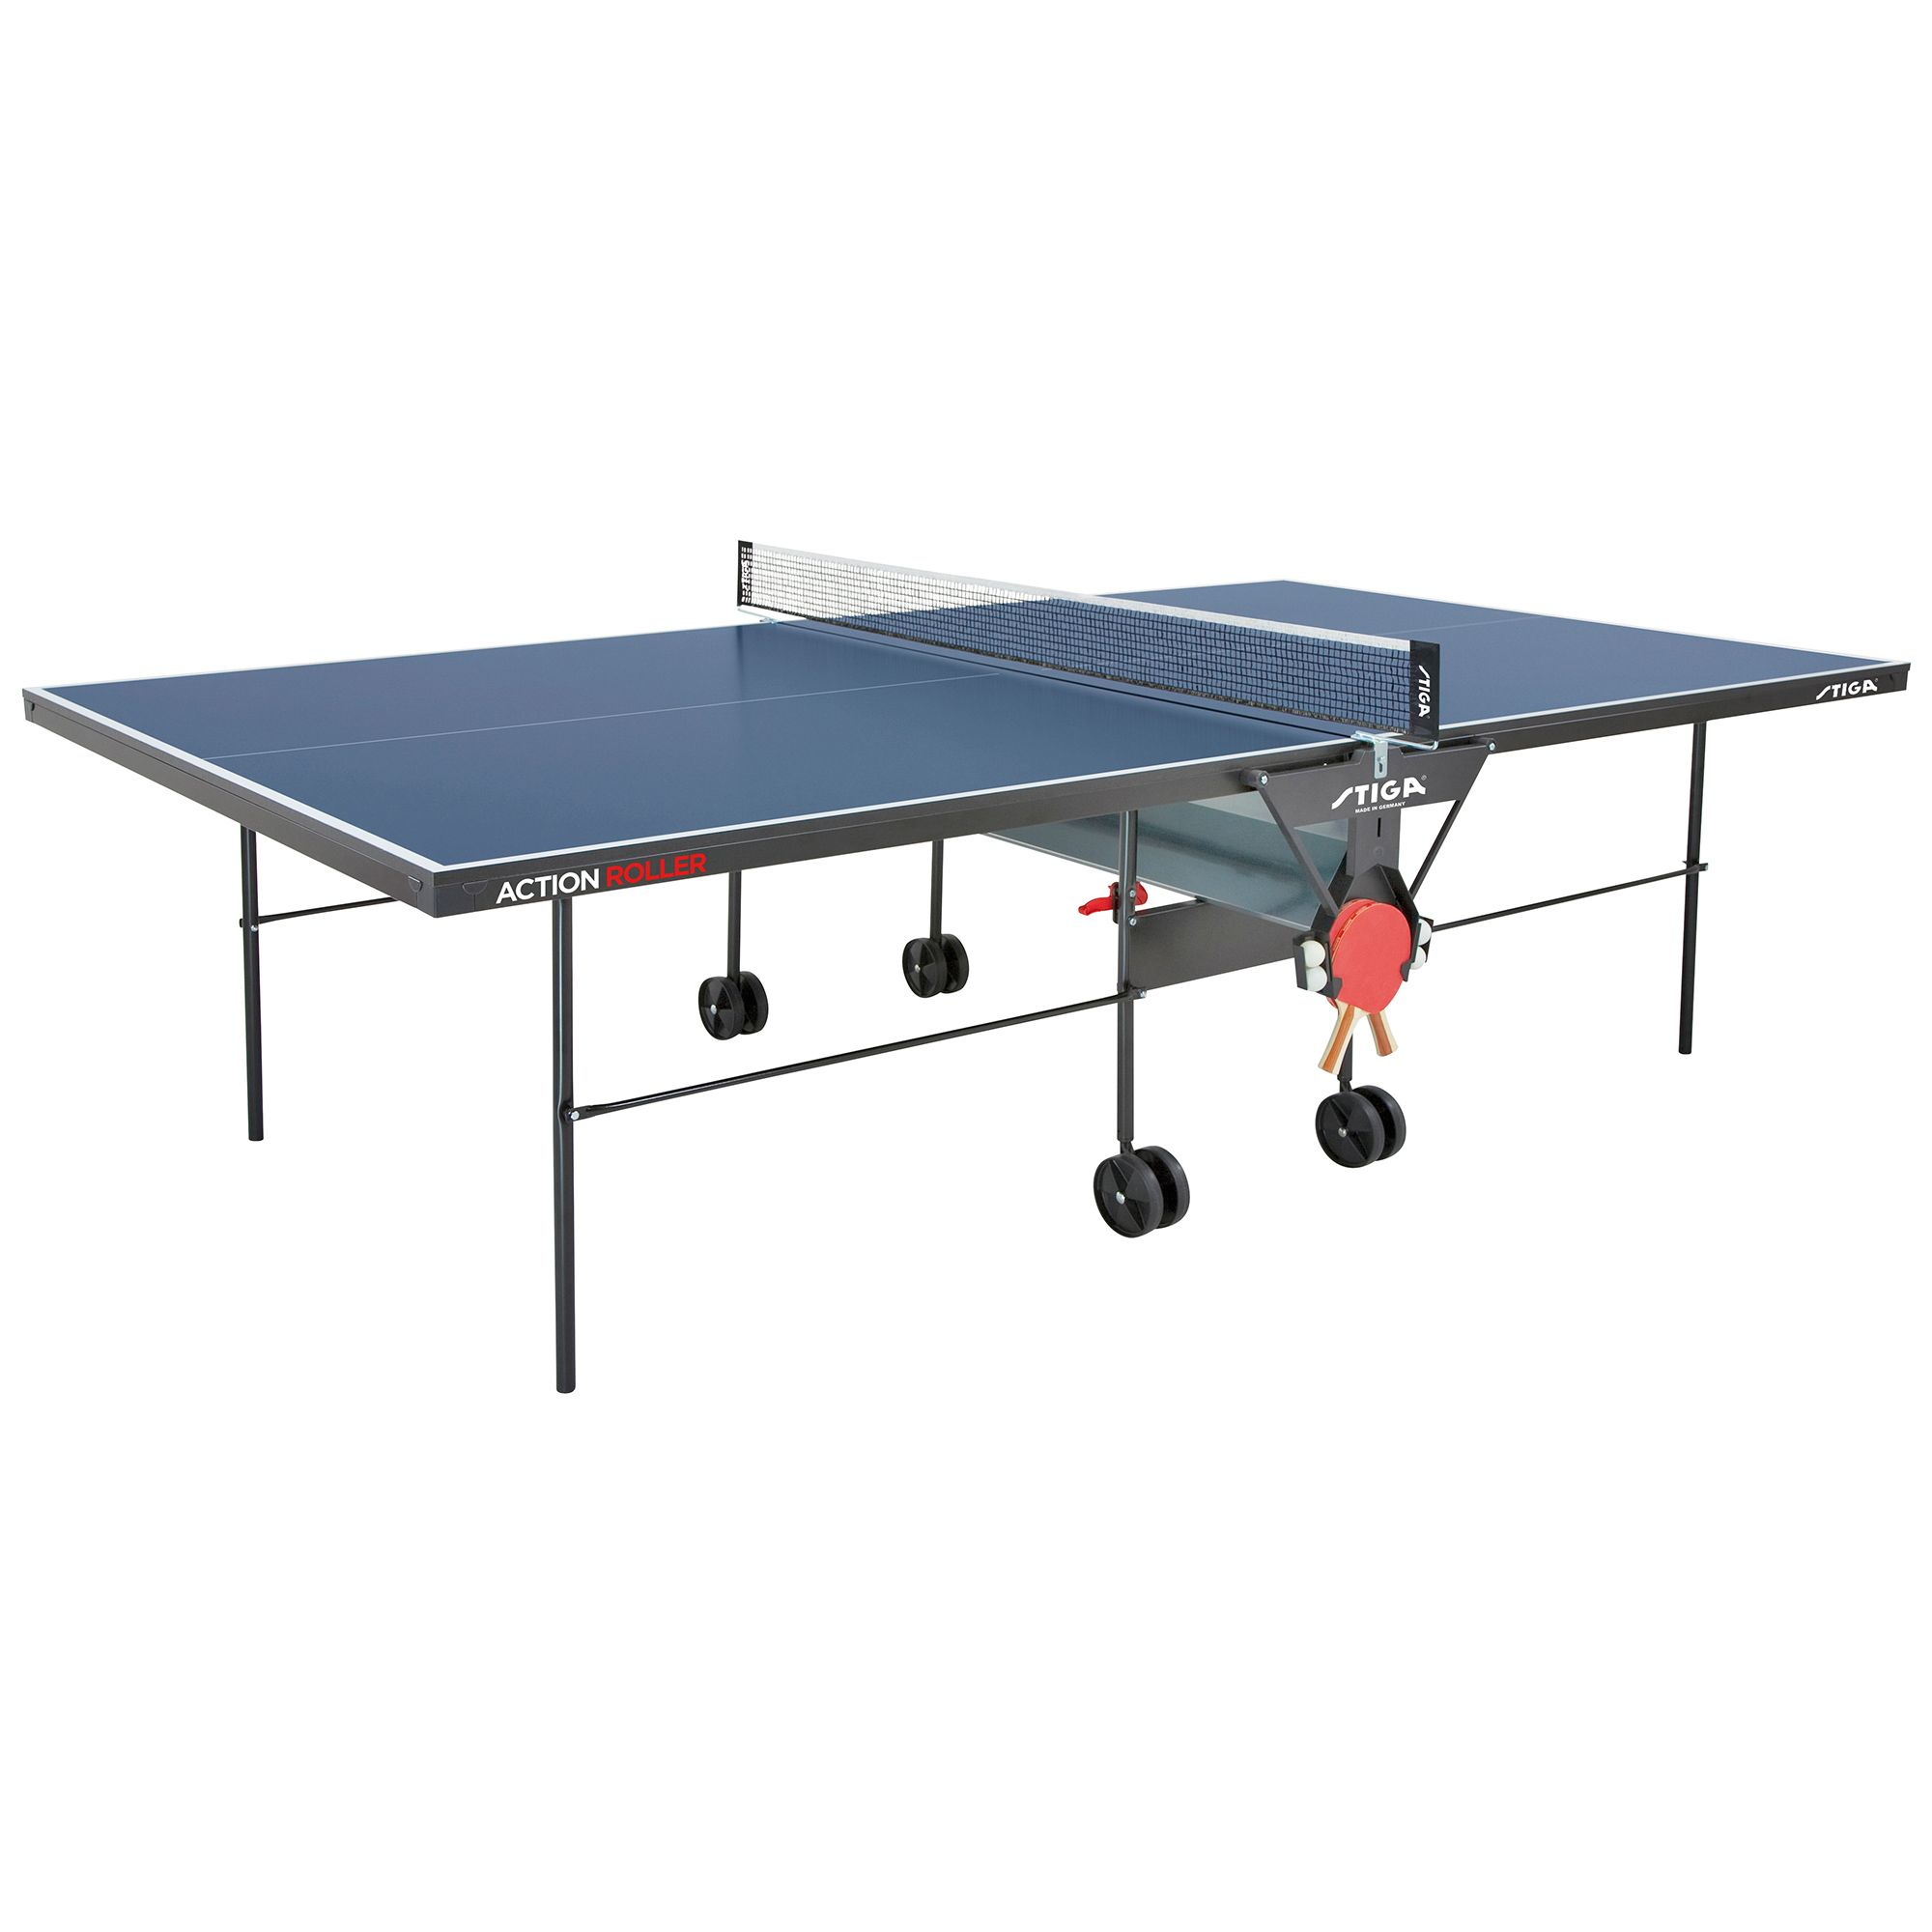 Stiga action roller indoor table tennis table - Stiga outdoor table tennis table ...